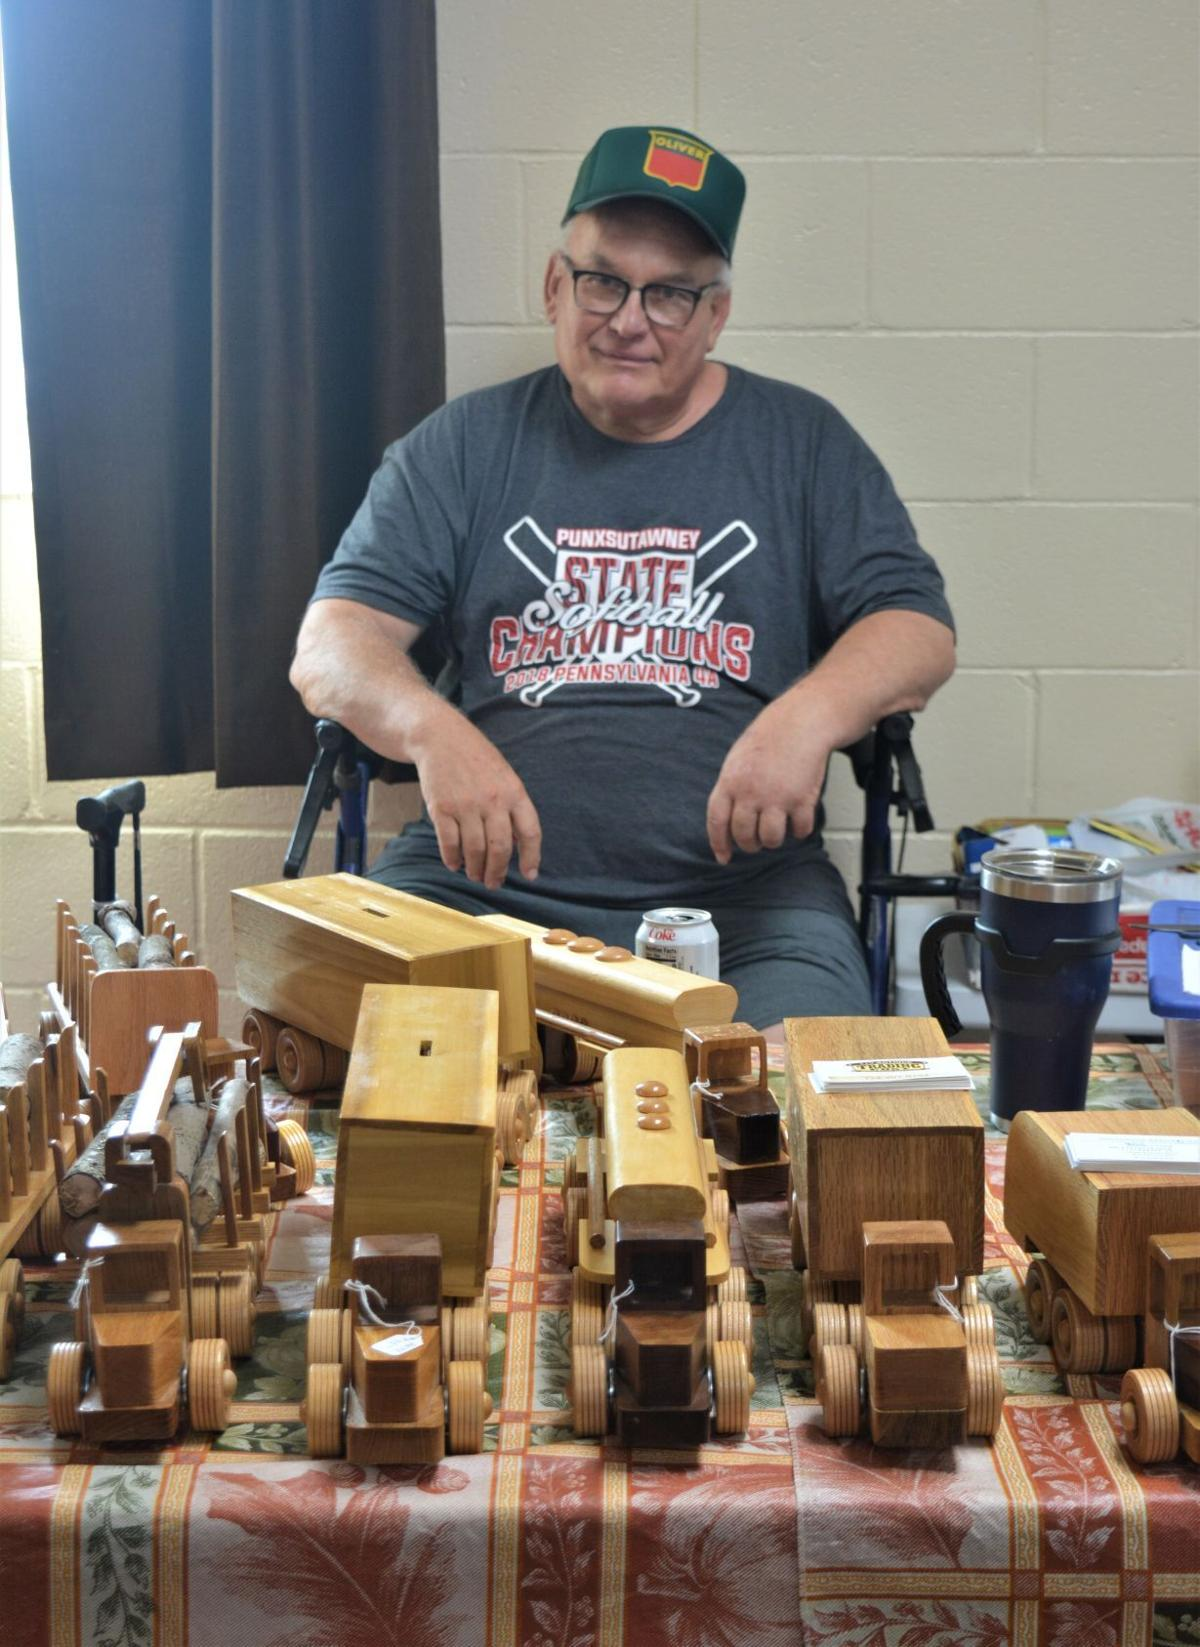 Alvin Knarr with wooden toys